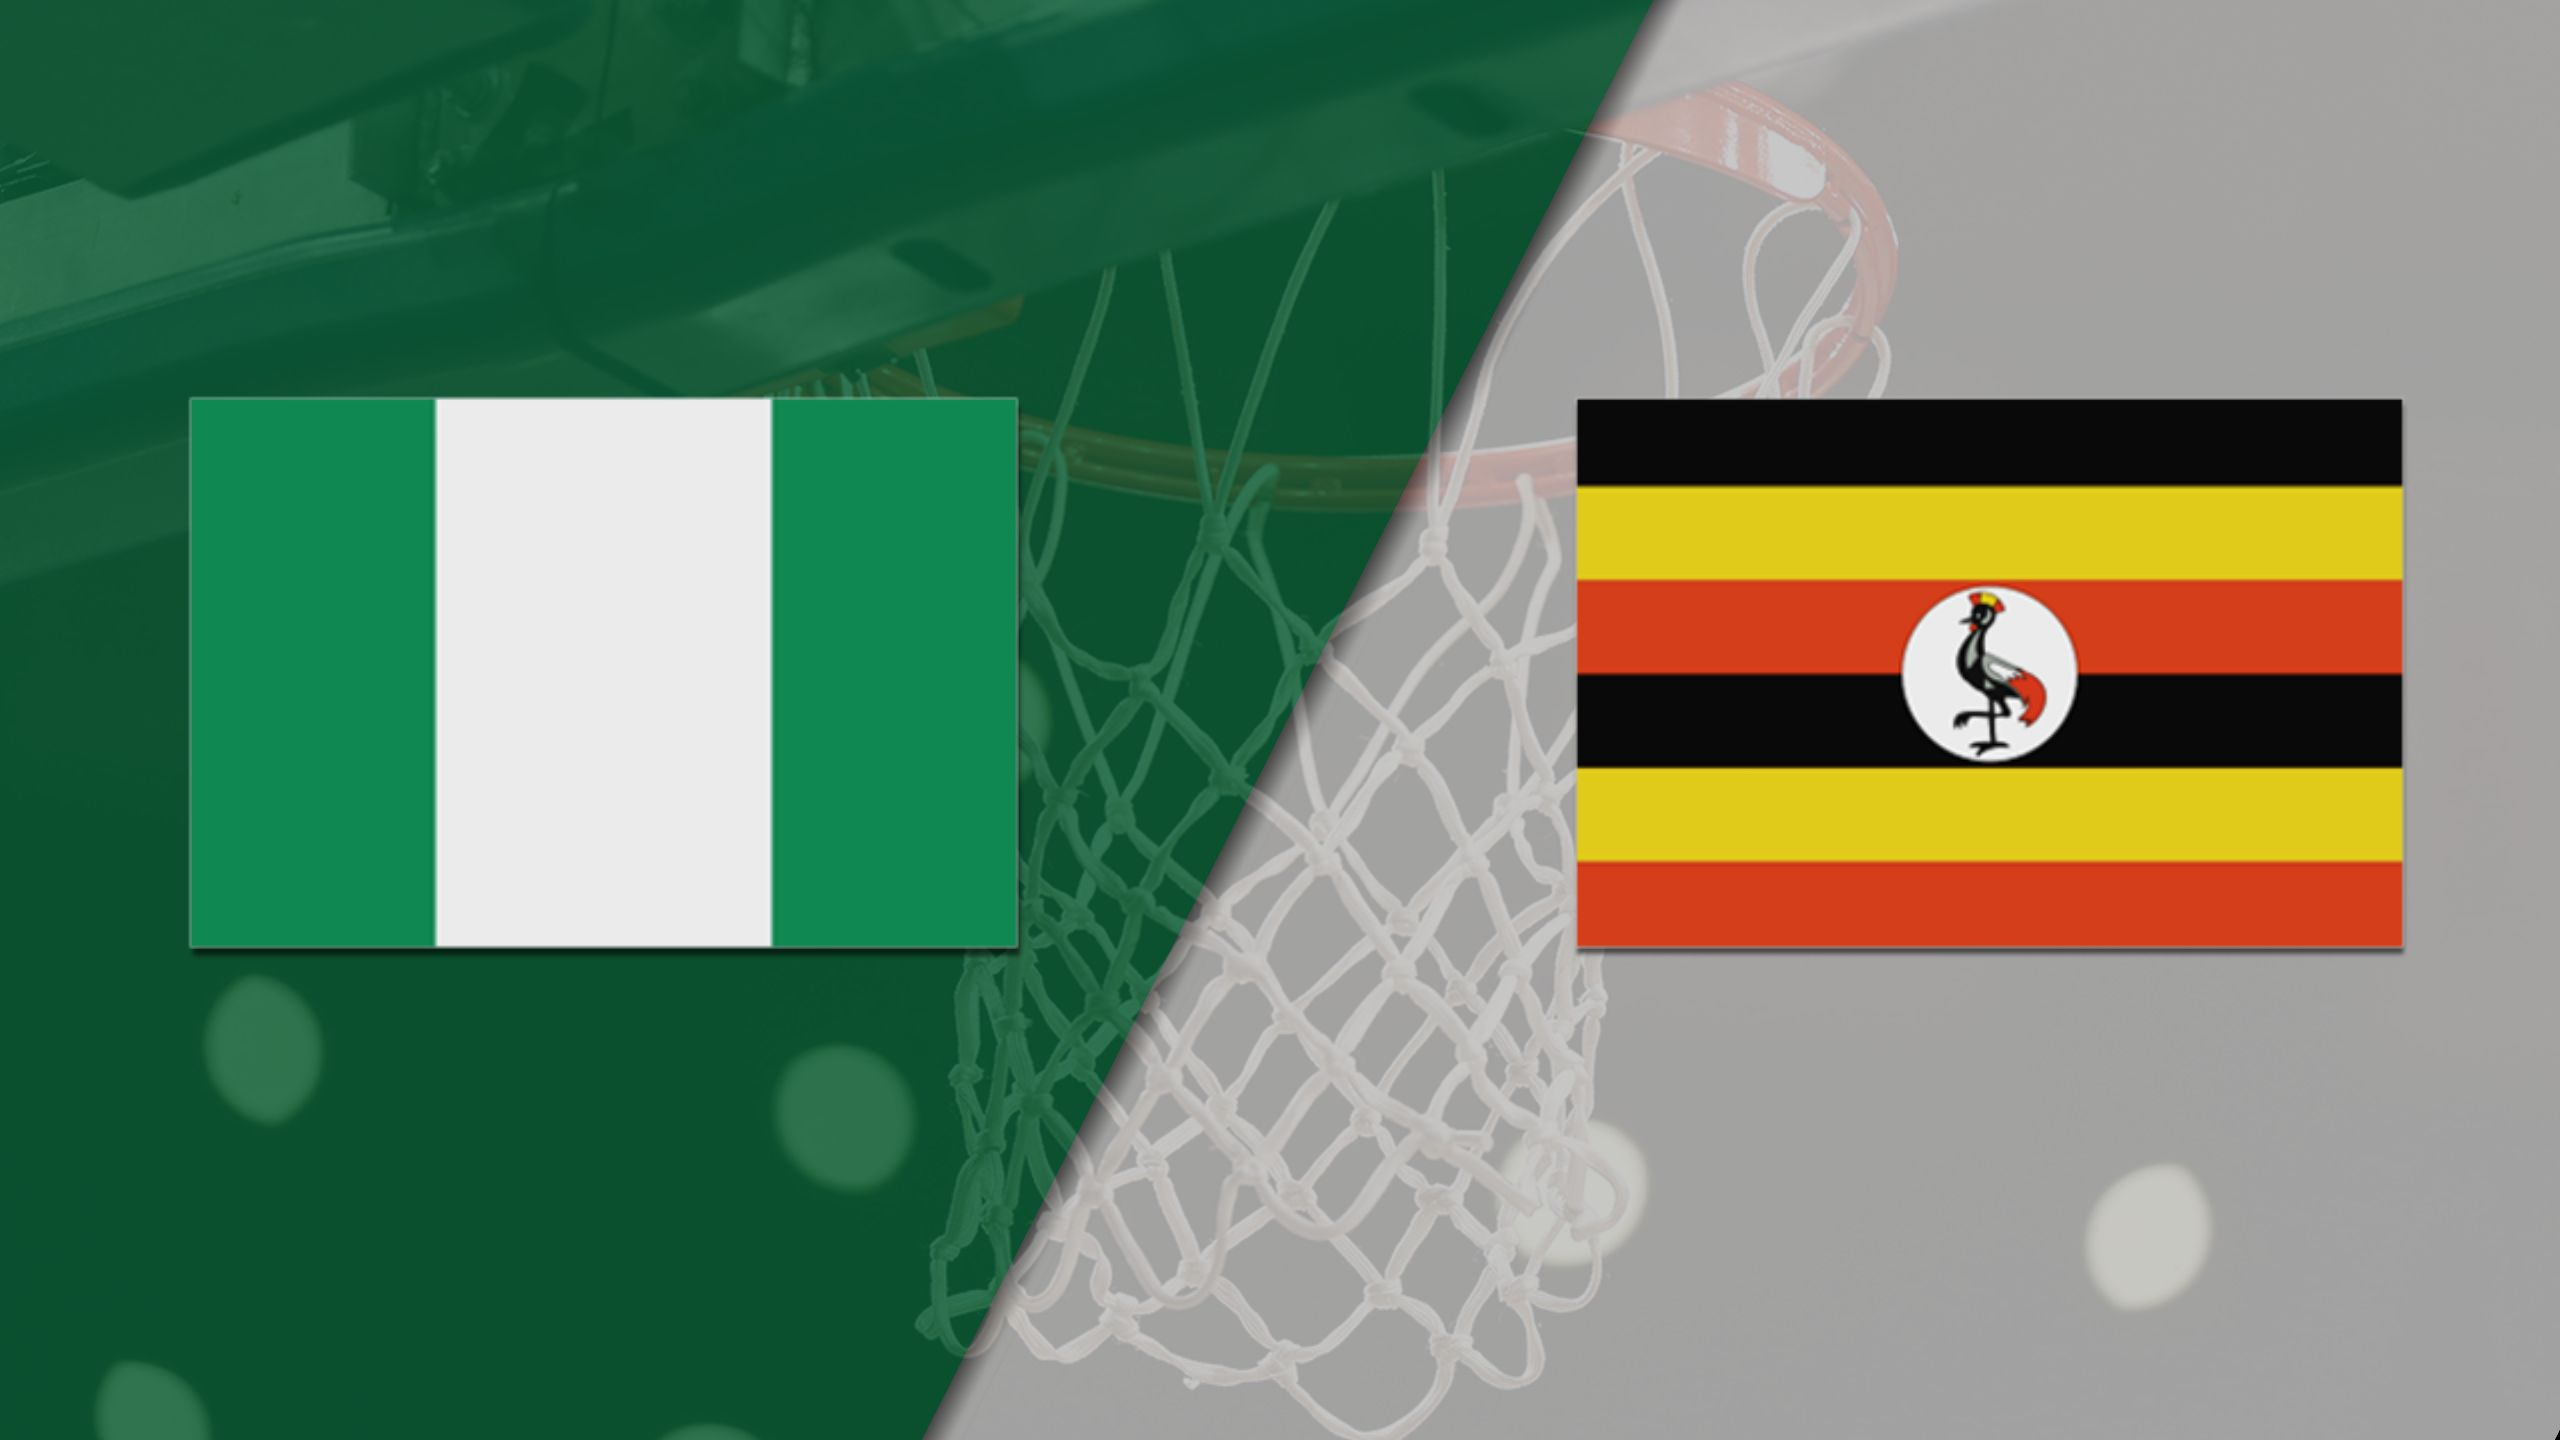 Nigeria vs. Uganda (FIBA World Cup 2019 Qualifier)